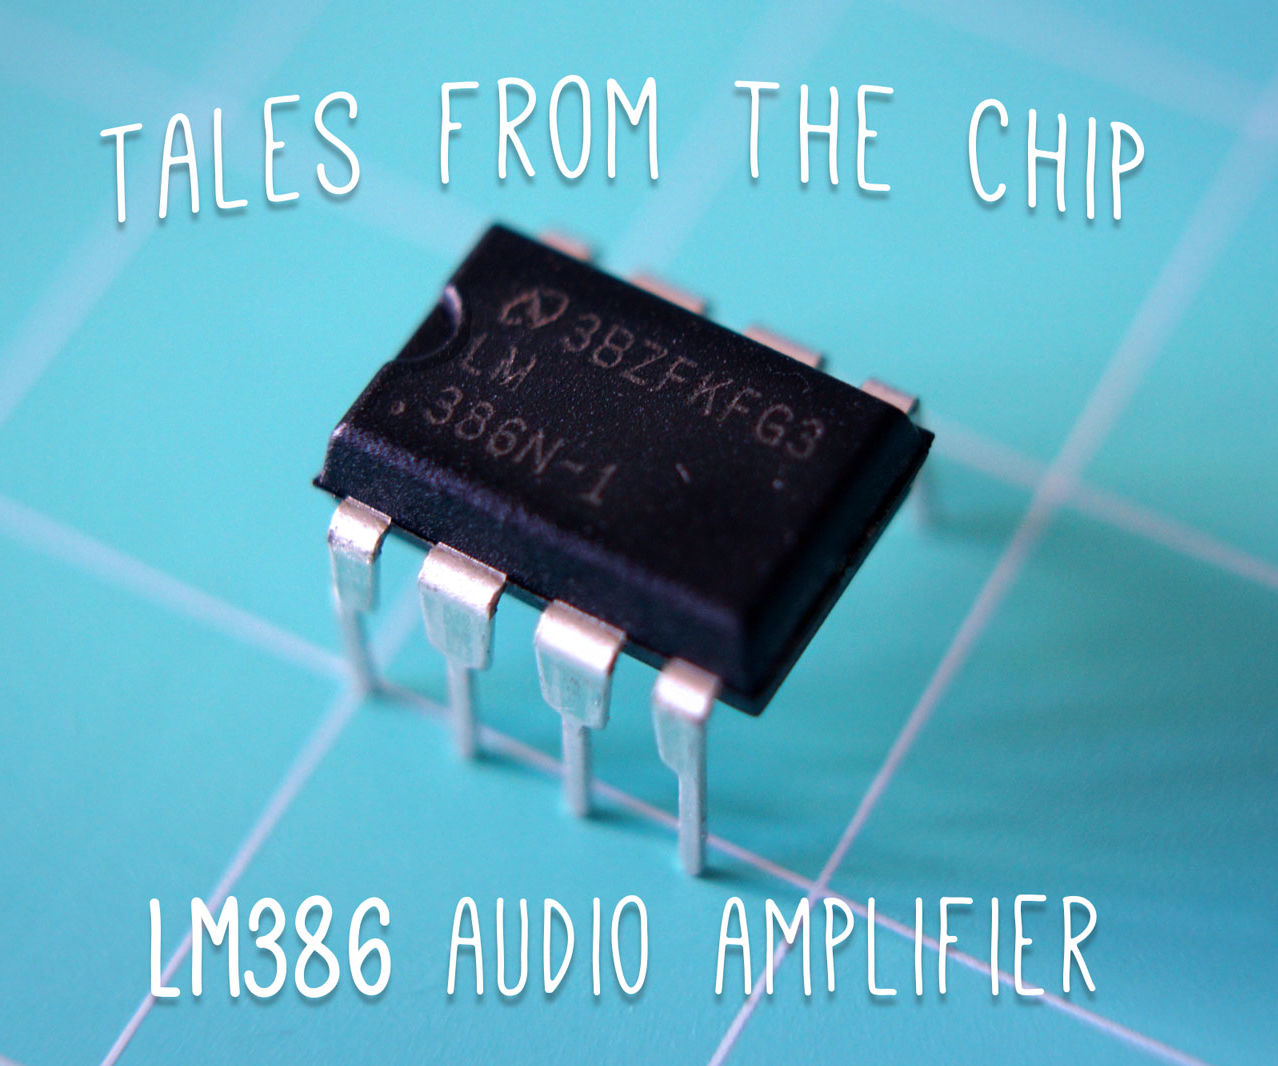 hight resolution of tales from the chip lm386 audio amplifier